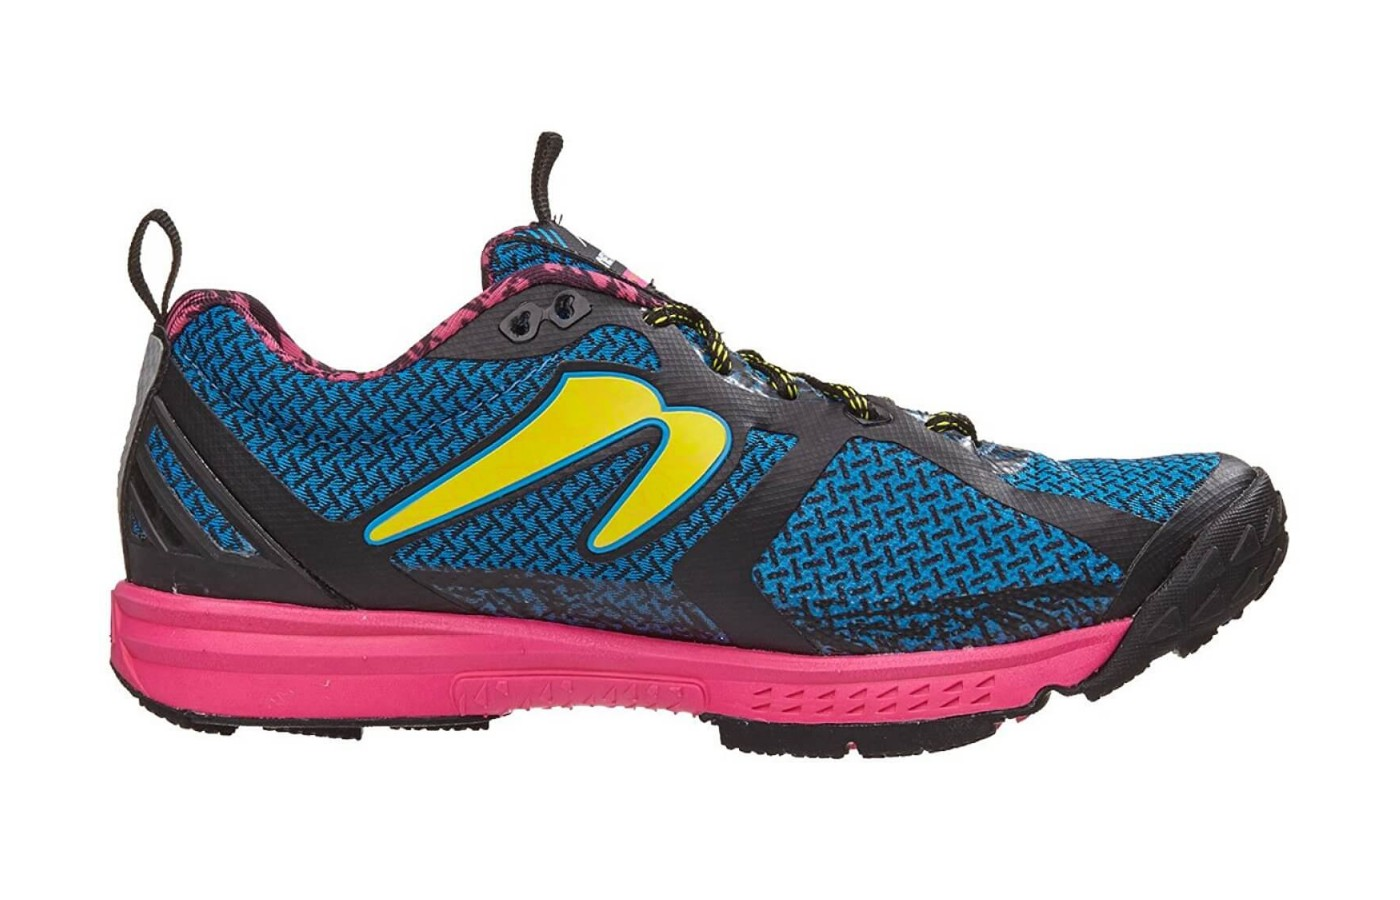 The Newton BoCo AT 3 midsole contains EVA foam cushioning